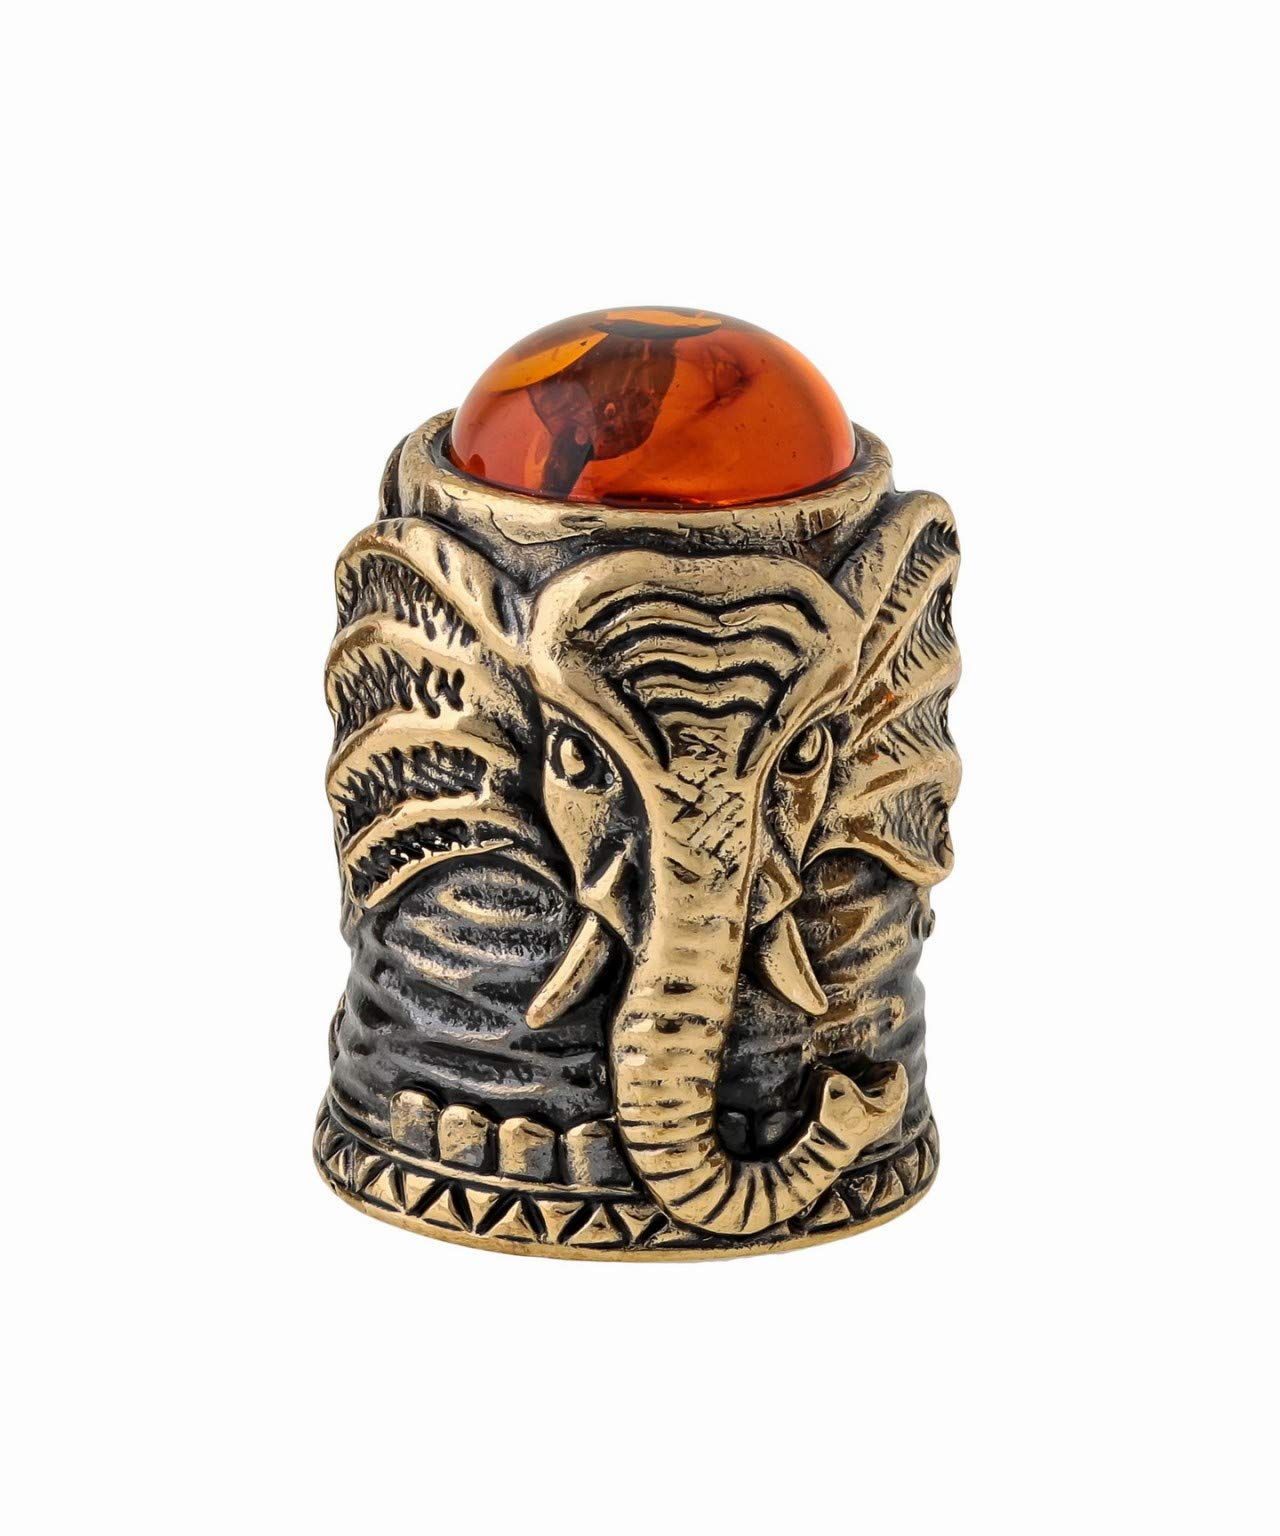 Amber and Brass Thimble (Elephant) Decorative Souvenir Thimbles. Antique and Vintage Designs from Kaliningrad, Russia. Packed in a Beautiful Siberian Birch Bark Gift Box (Random Selection) by Brass and Amber Art